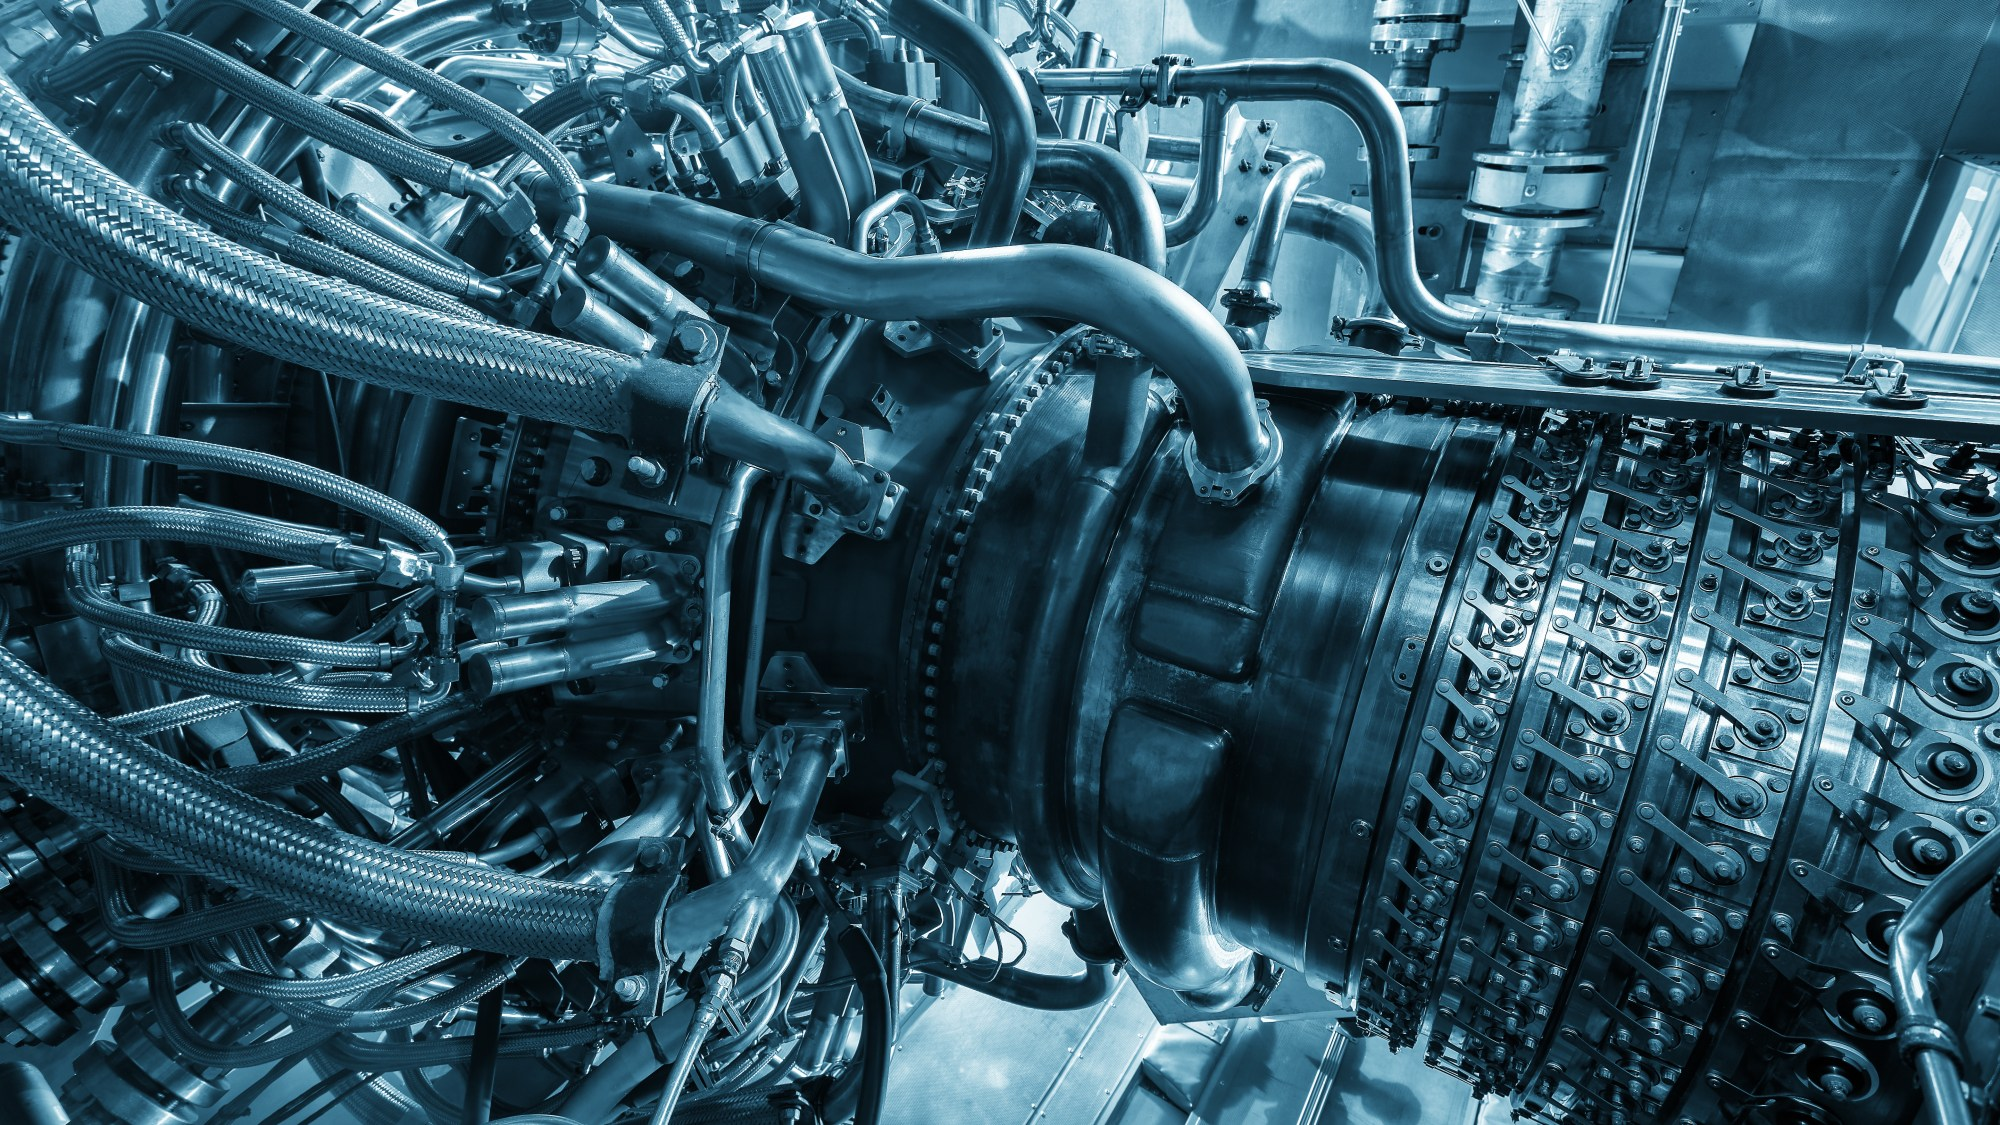 The future of high-temperature materials for gas turbines